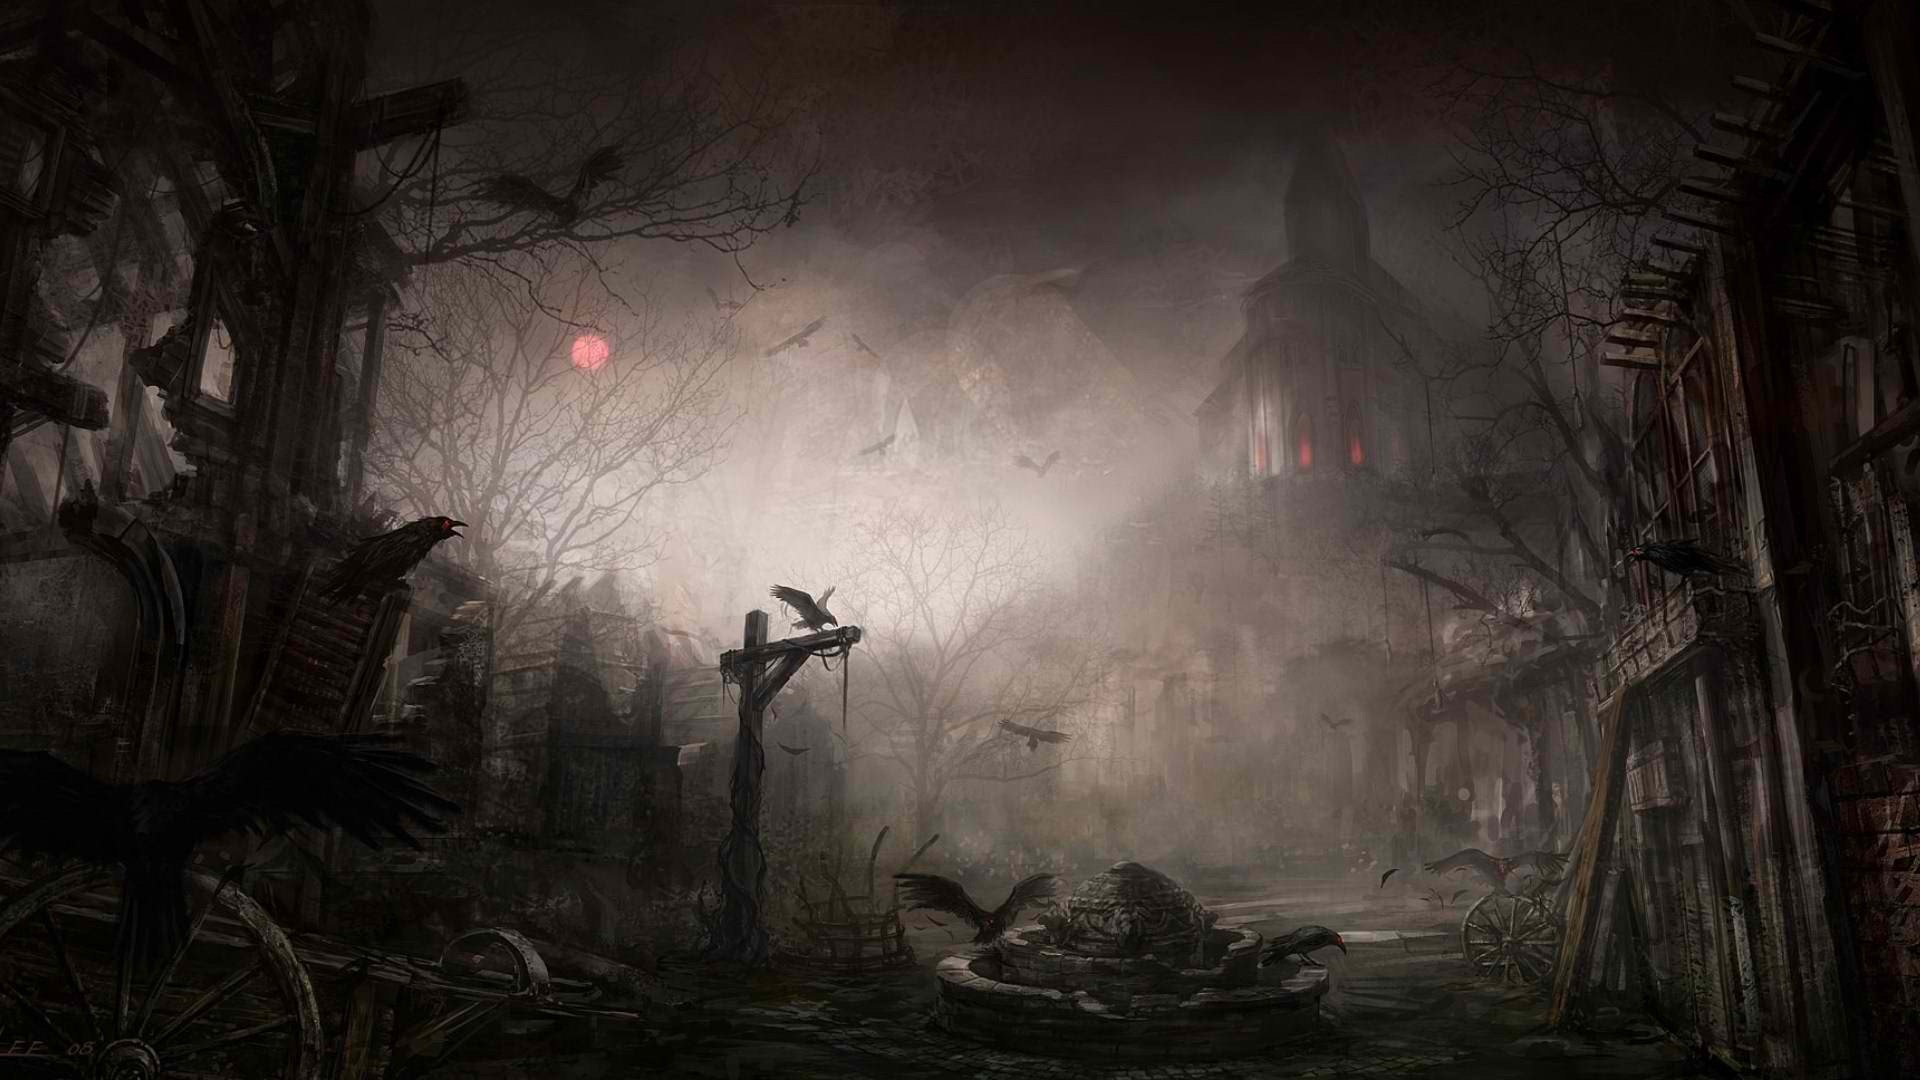 1920x1080 scary halloween background hd wallpaper wallpapers55com Best